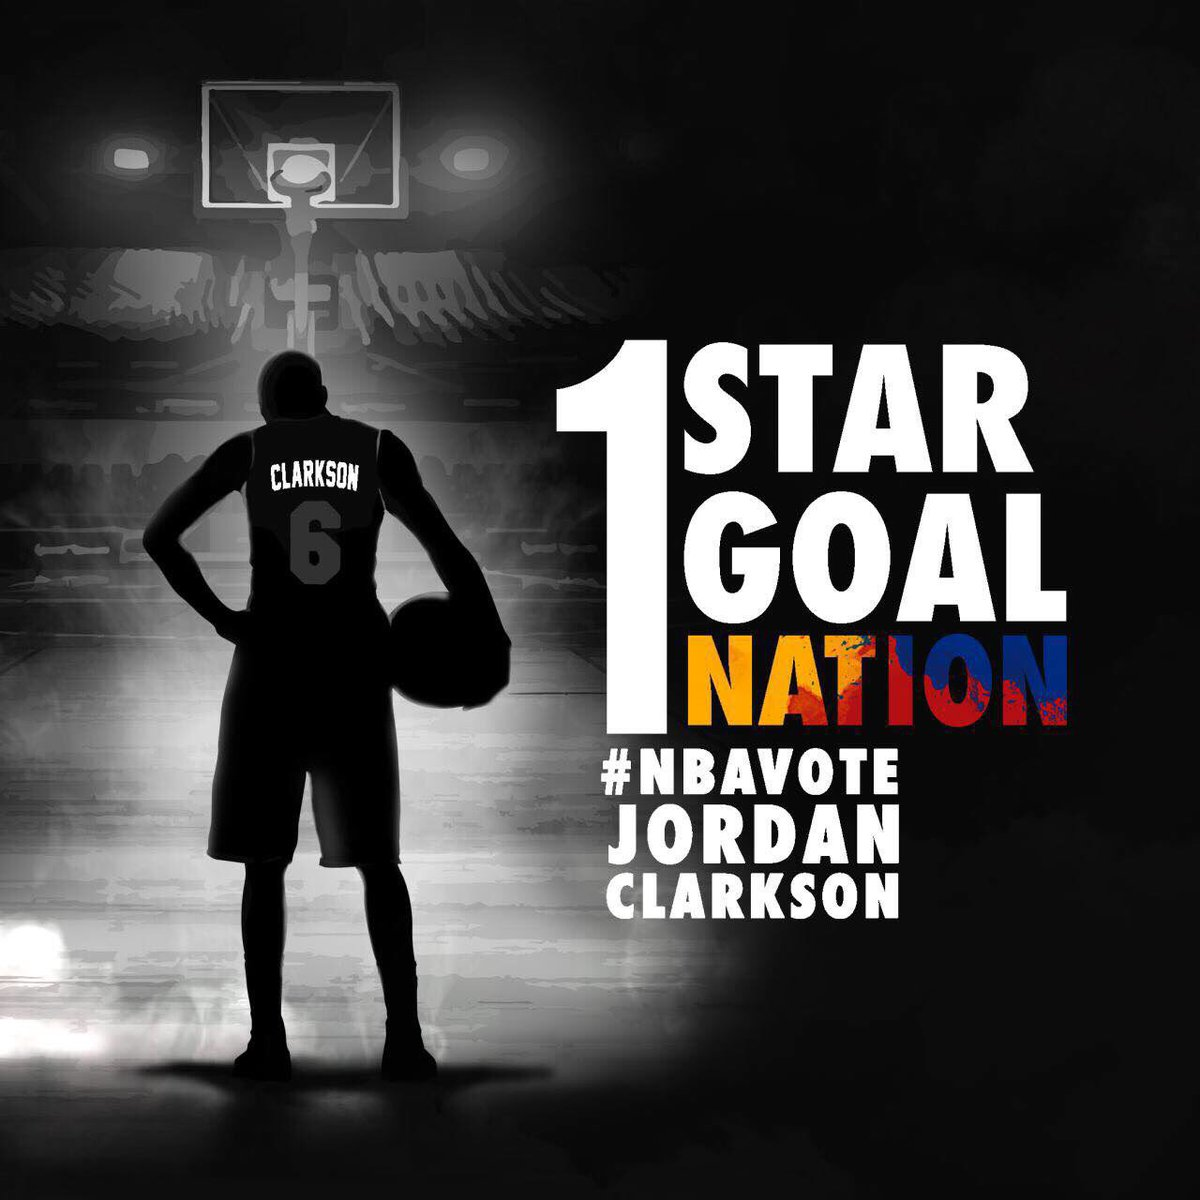 Imagine if the entire Philippines RT'd this.... Jordan Clarkson #NBAVote @Lakers @JClark5on @BTVHoops https://t.co/KCENRpkUbS